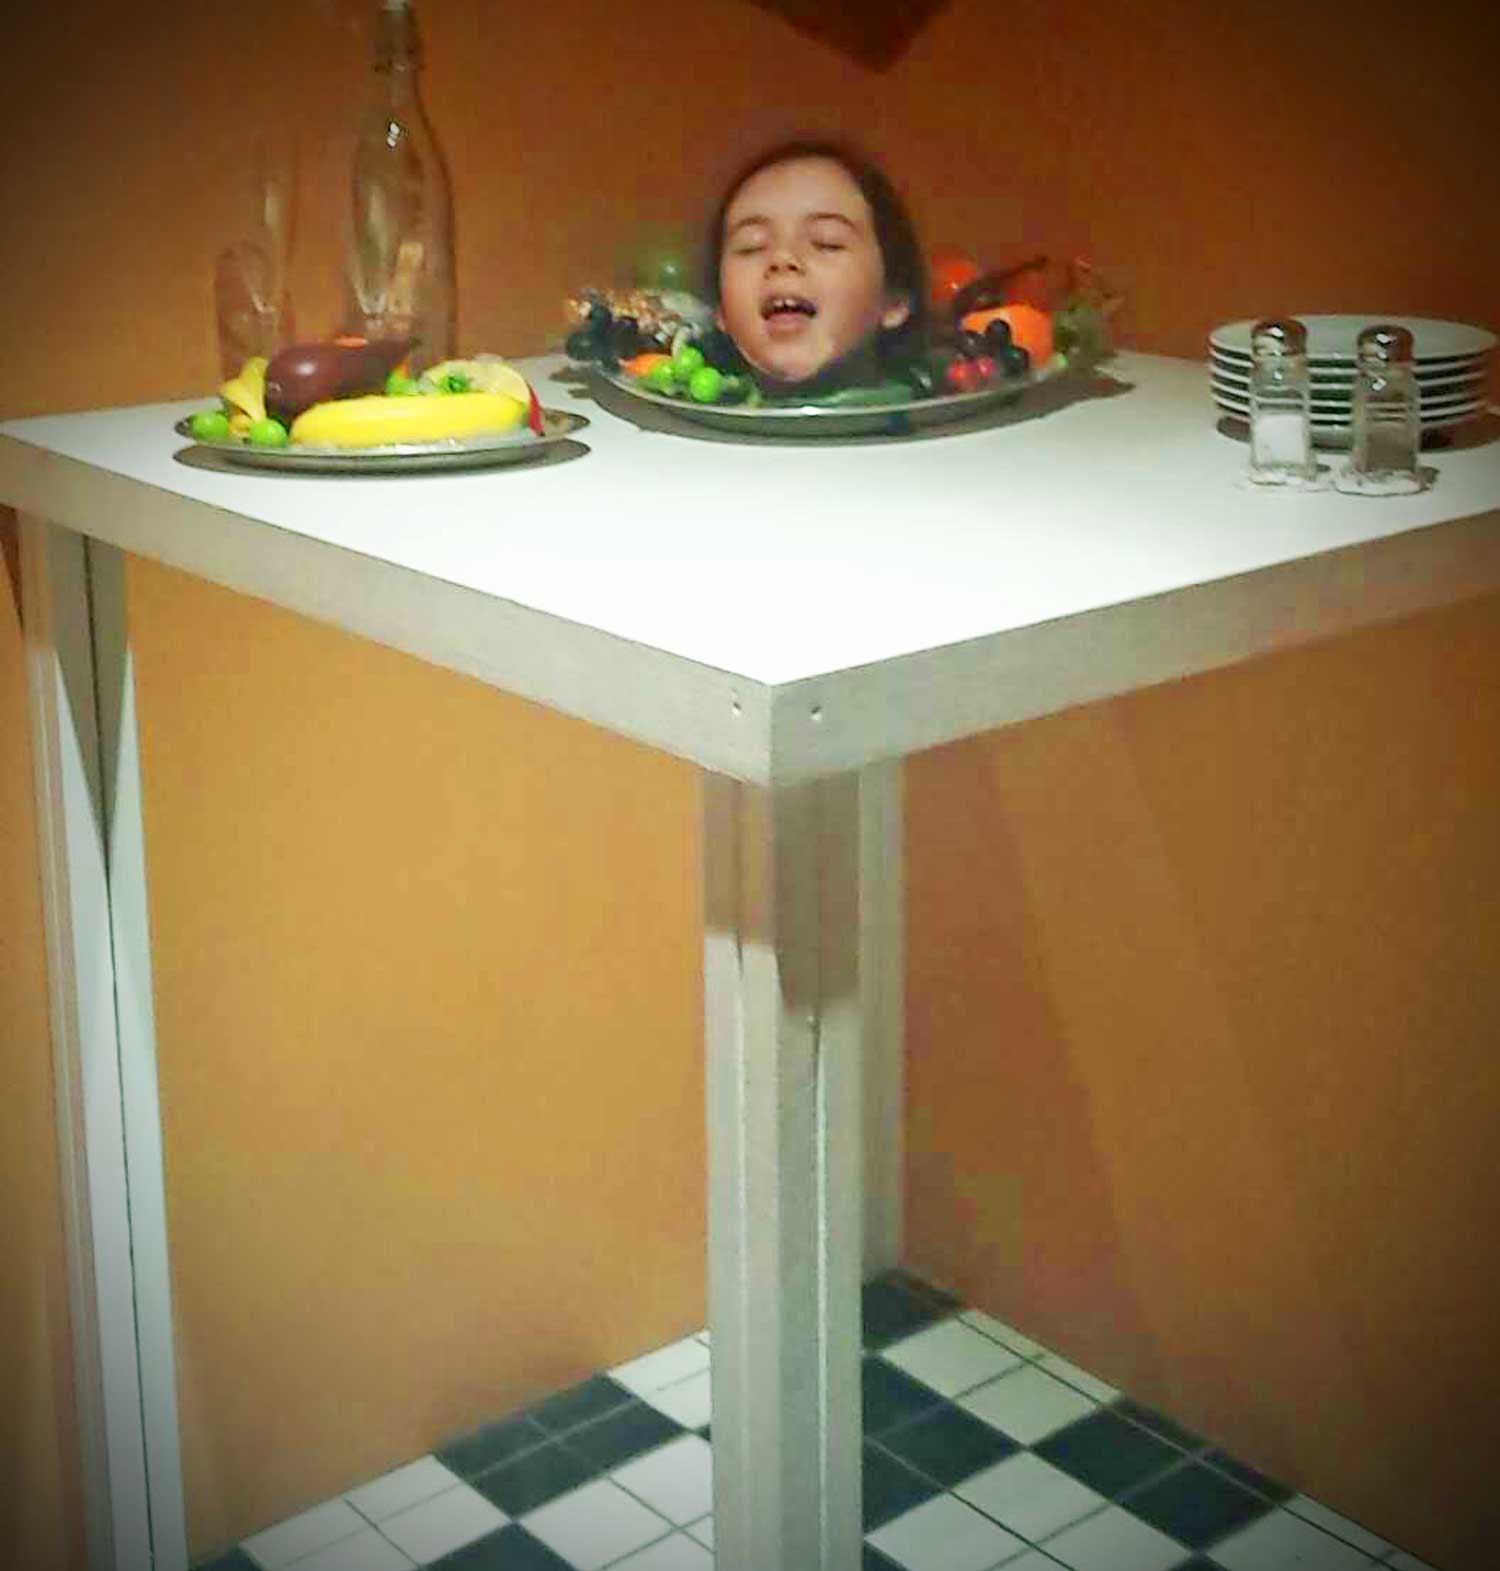 Tookii things to do with kids Illusions one of the activities for kids